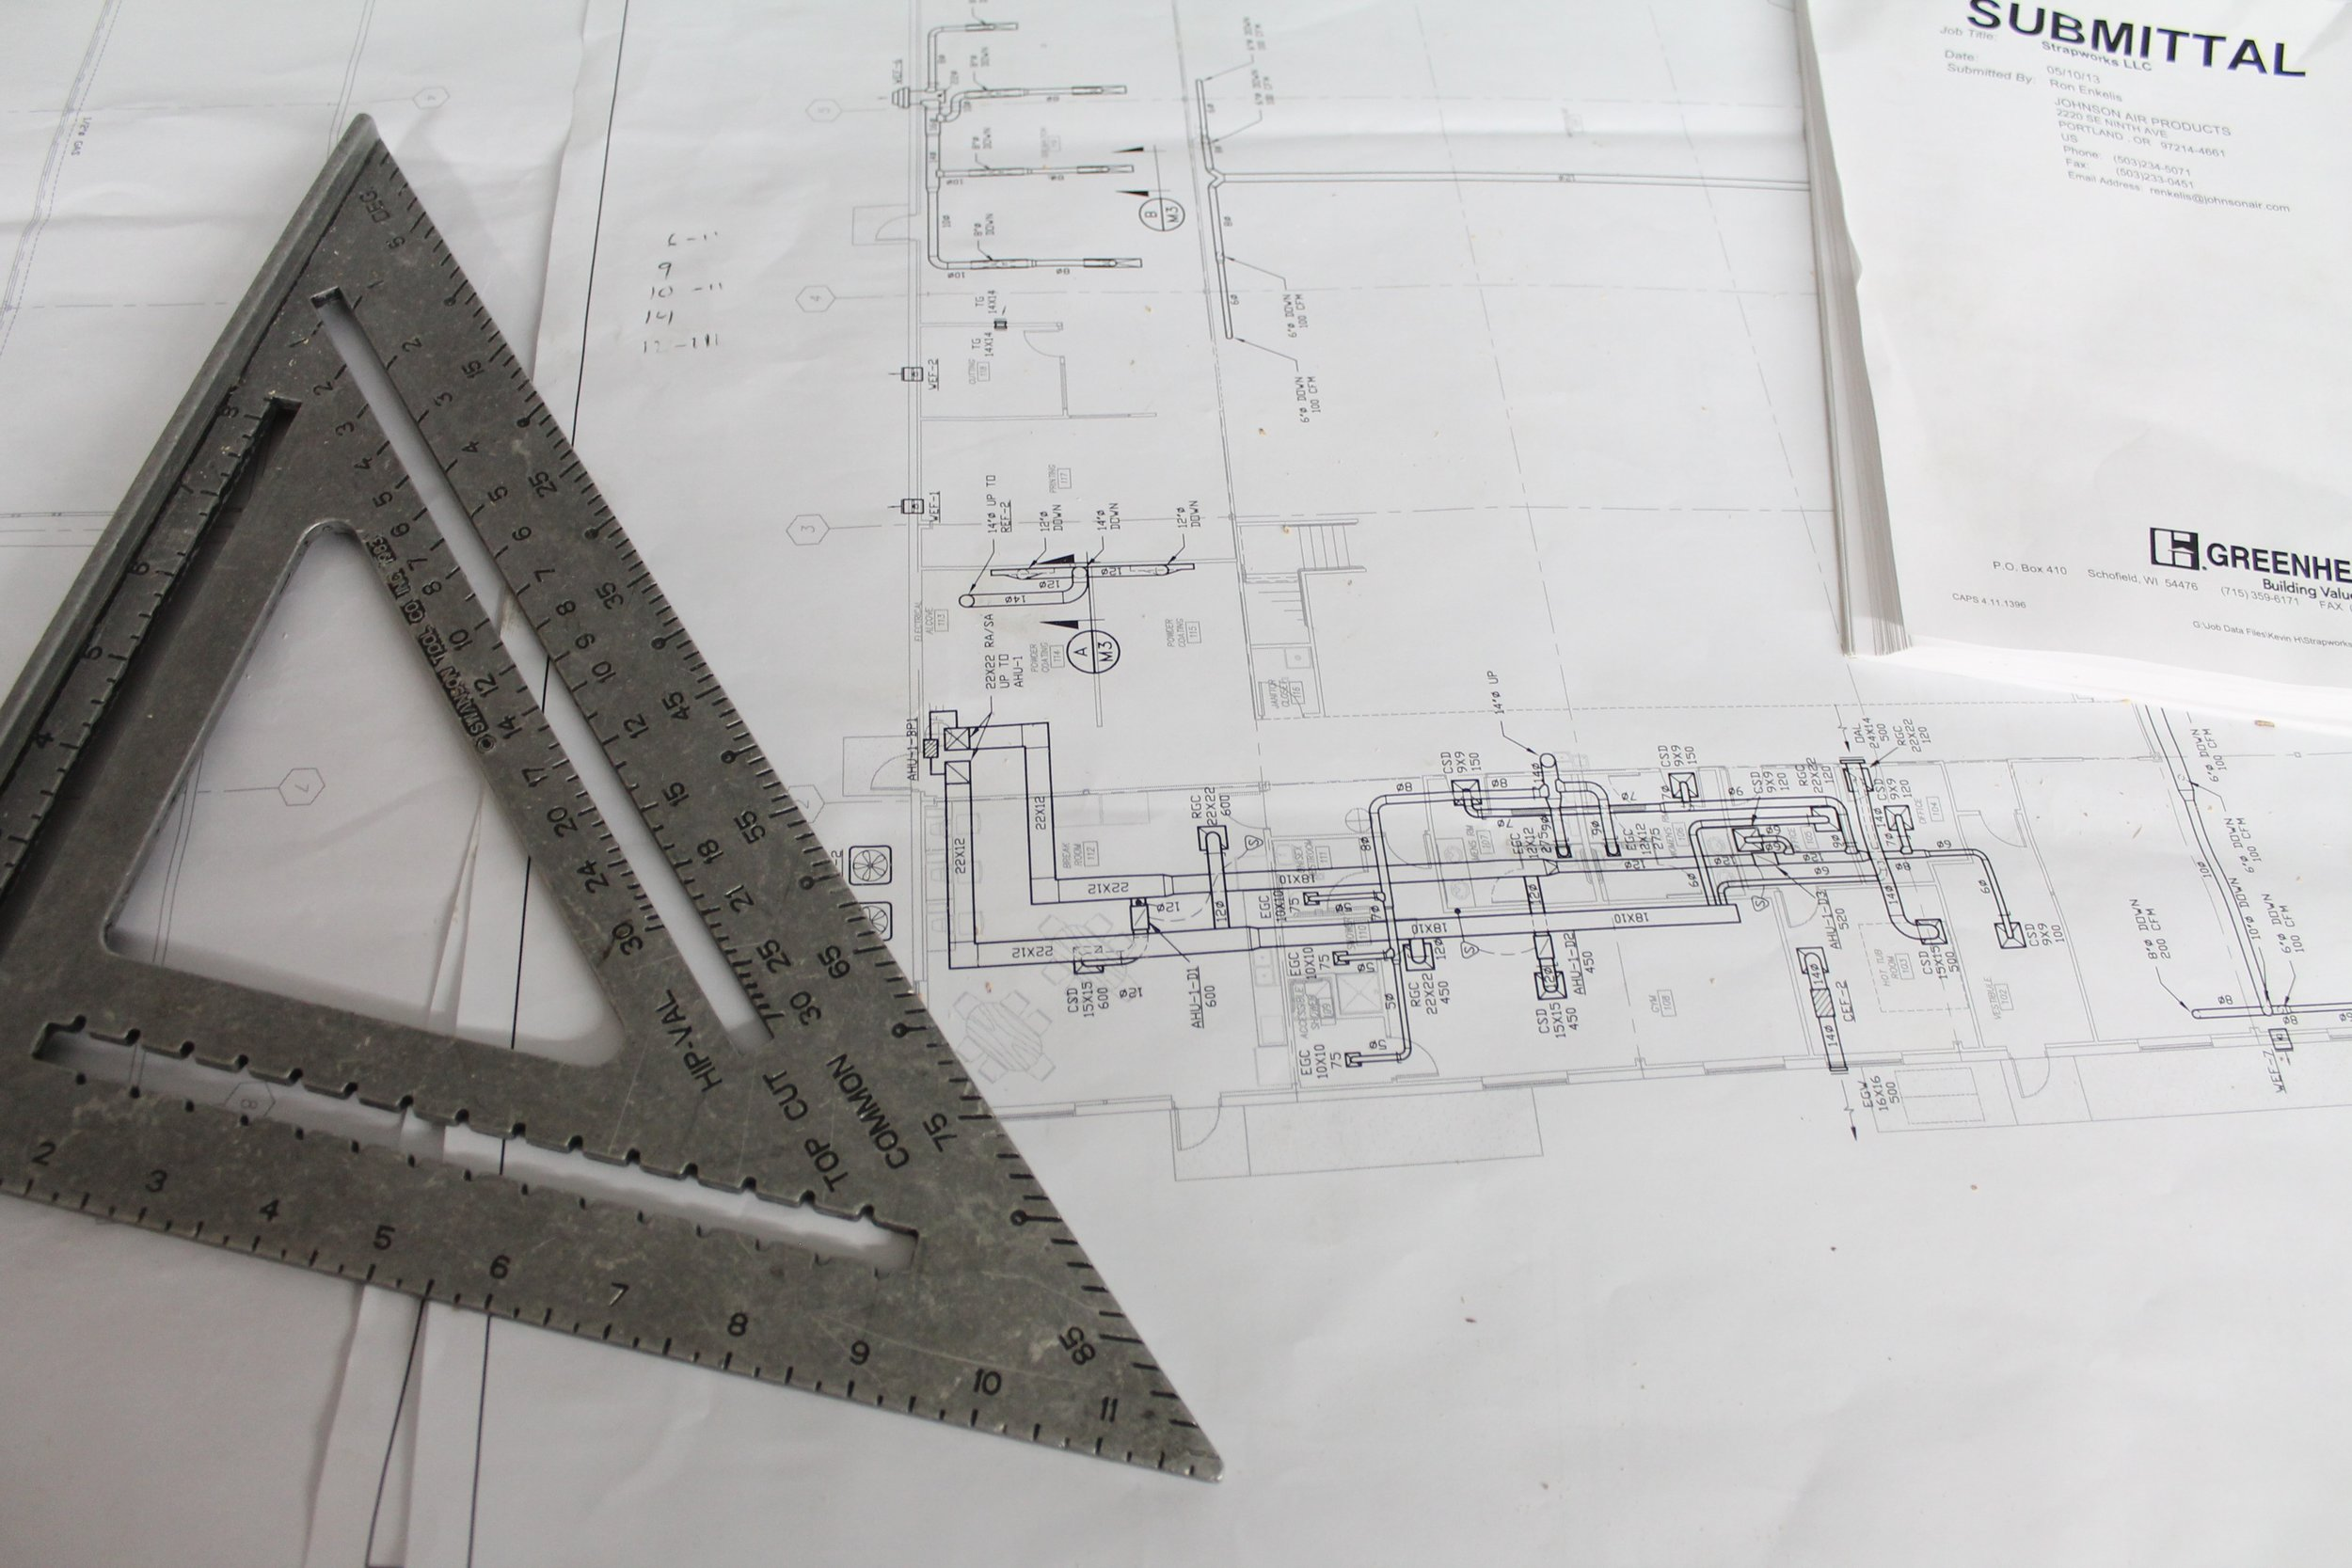 work-working-architecture-structure-white-building-1099461-pxhere.com.jpg